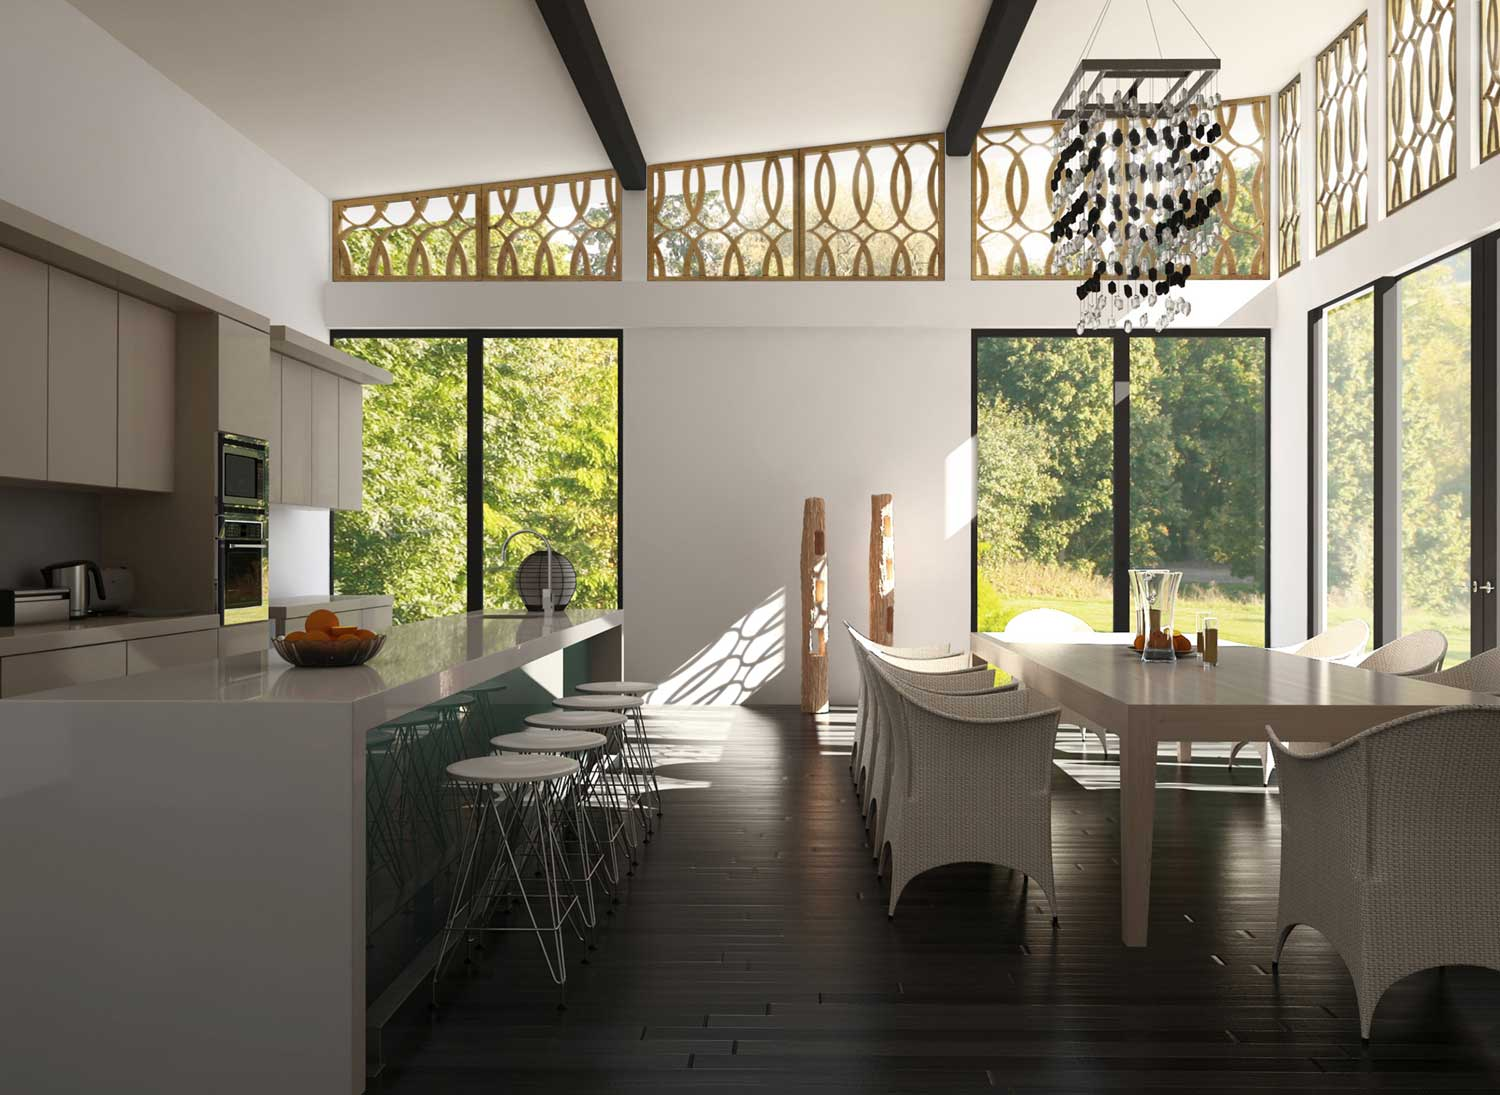 large kitchen and dining space with floor-windows and furniture